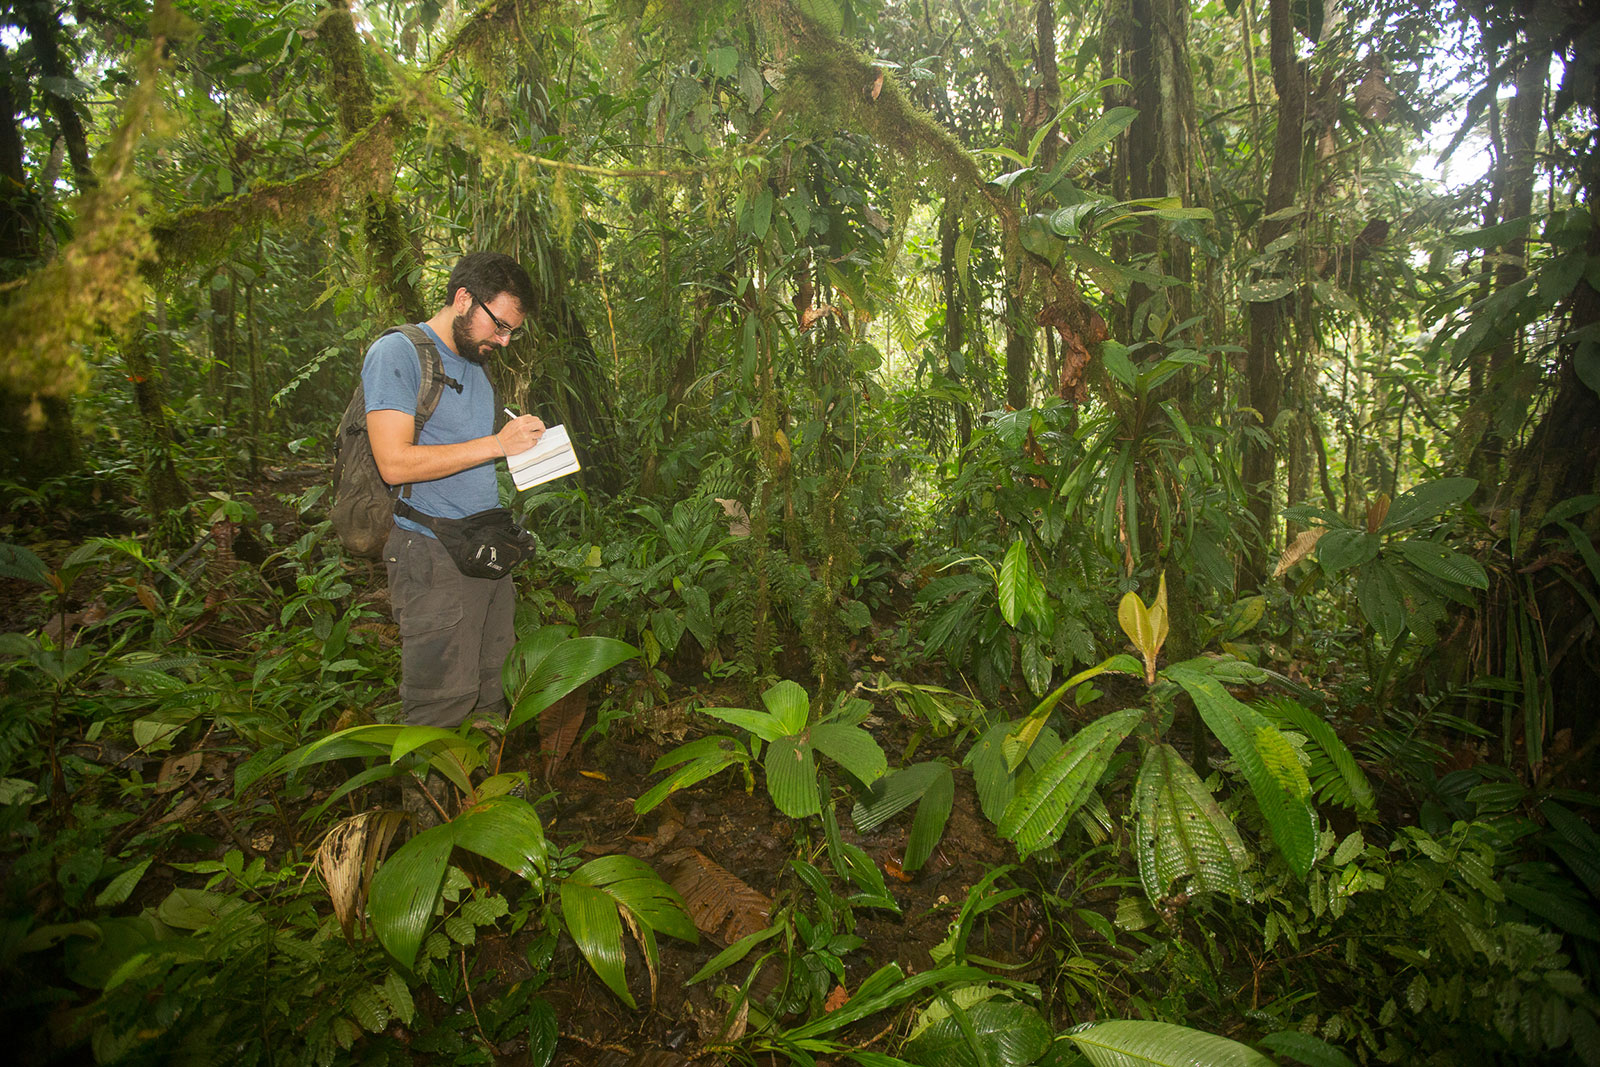 FCAT member Luke Browne taking notes on his findings in the forest